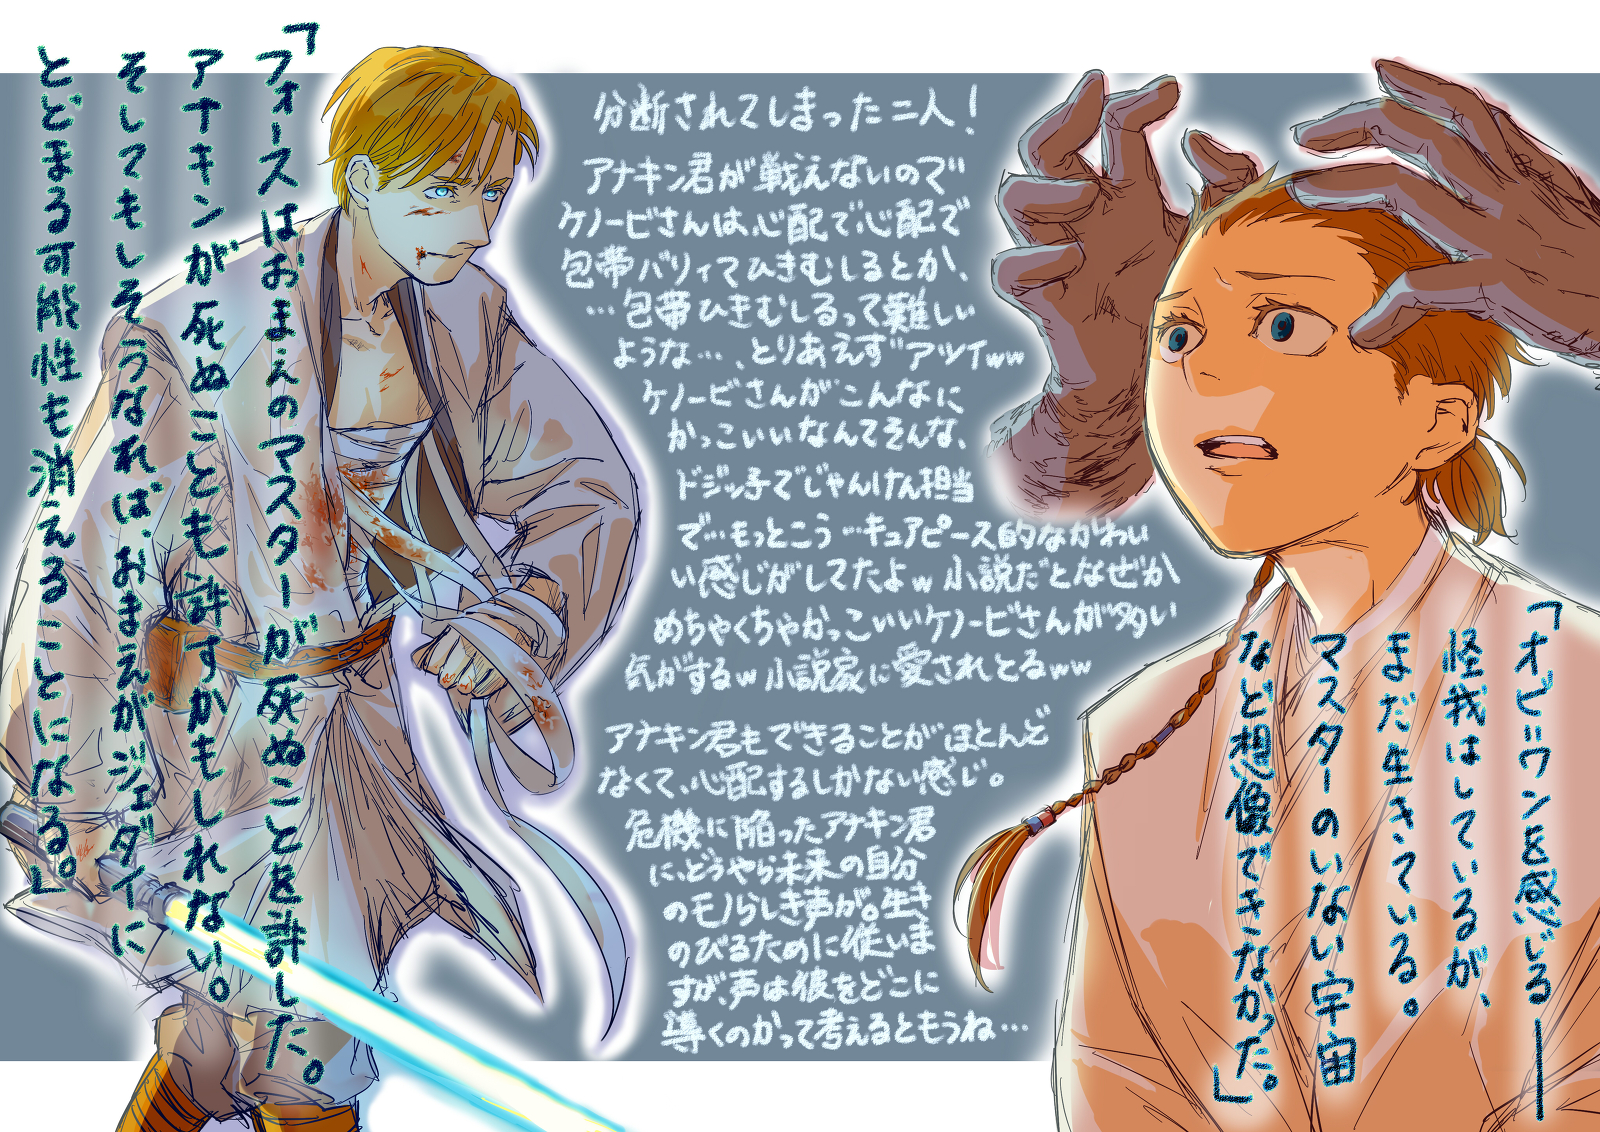 Star Wars | page 4 of 14 - Zerochan Anime Image Board